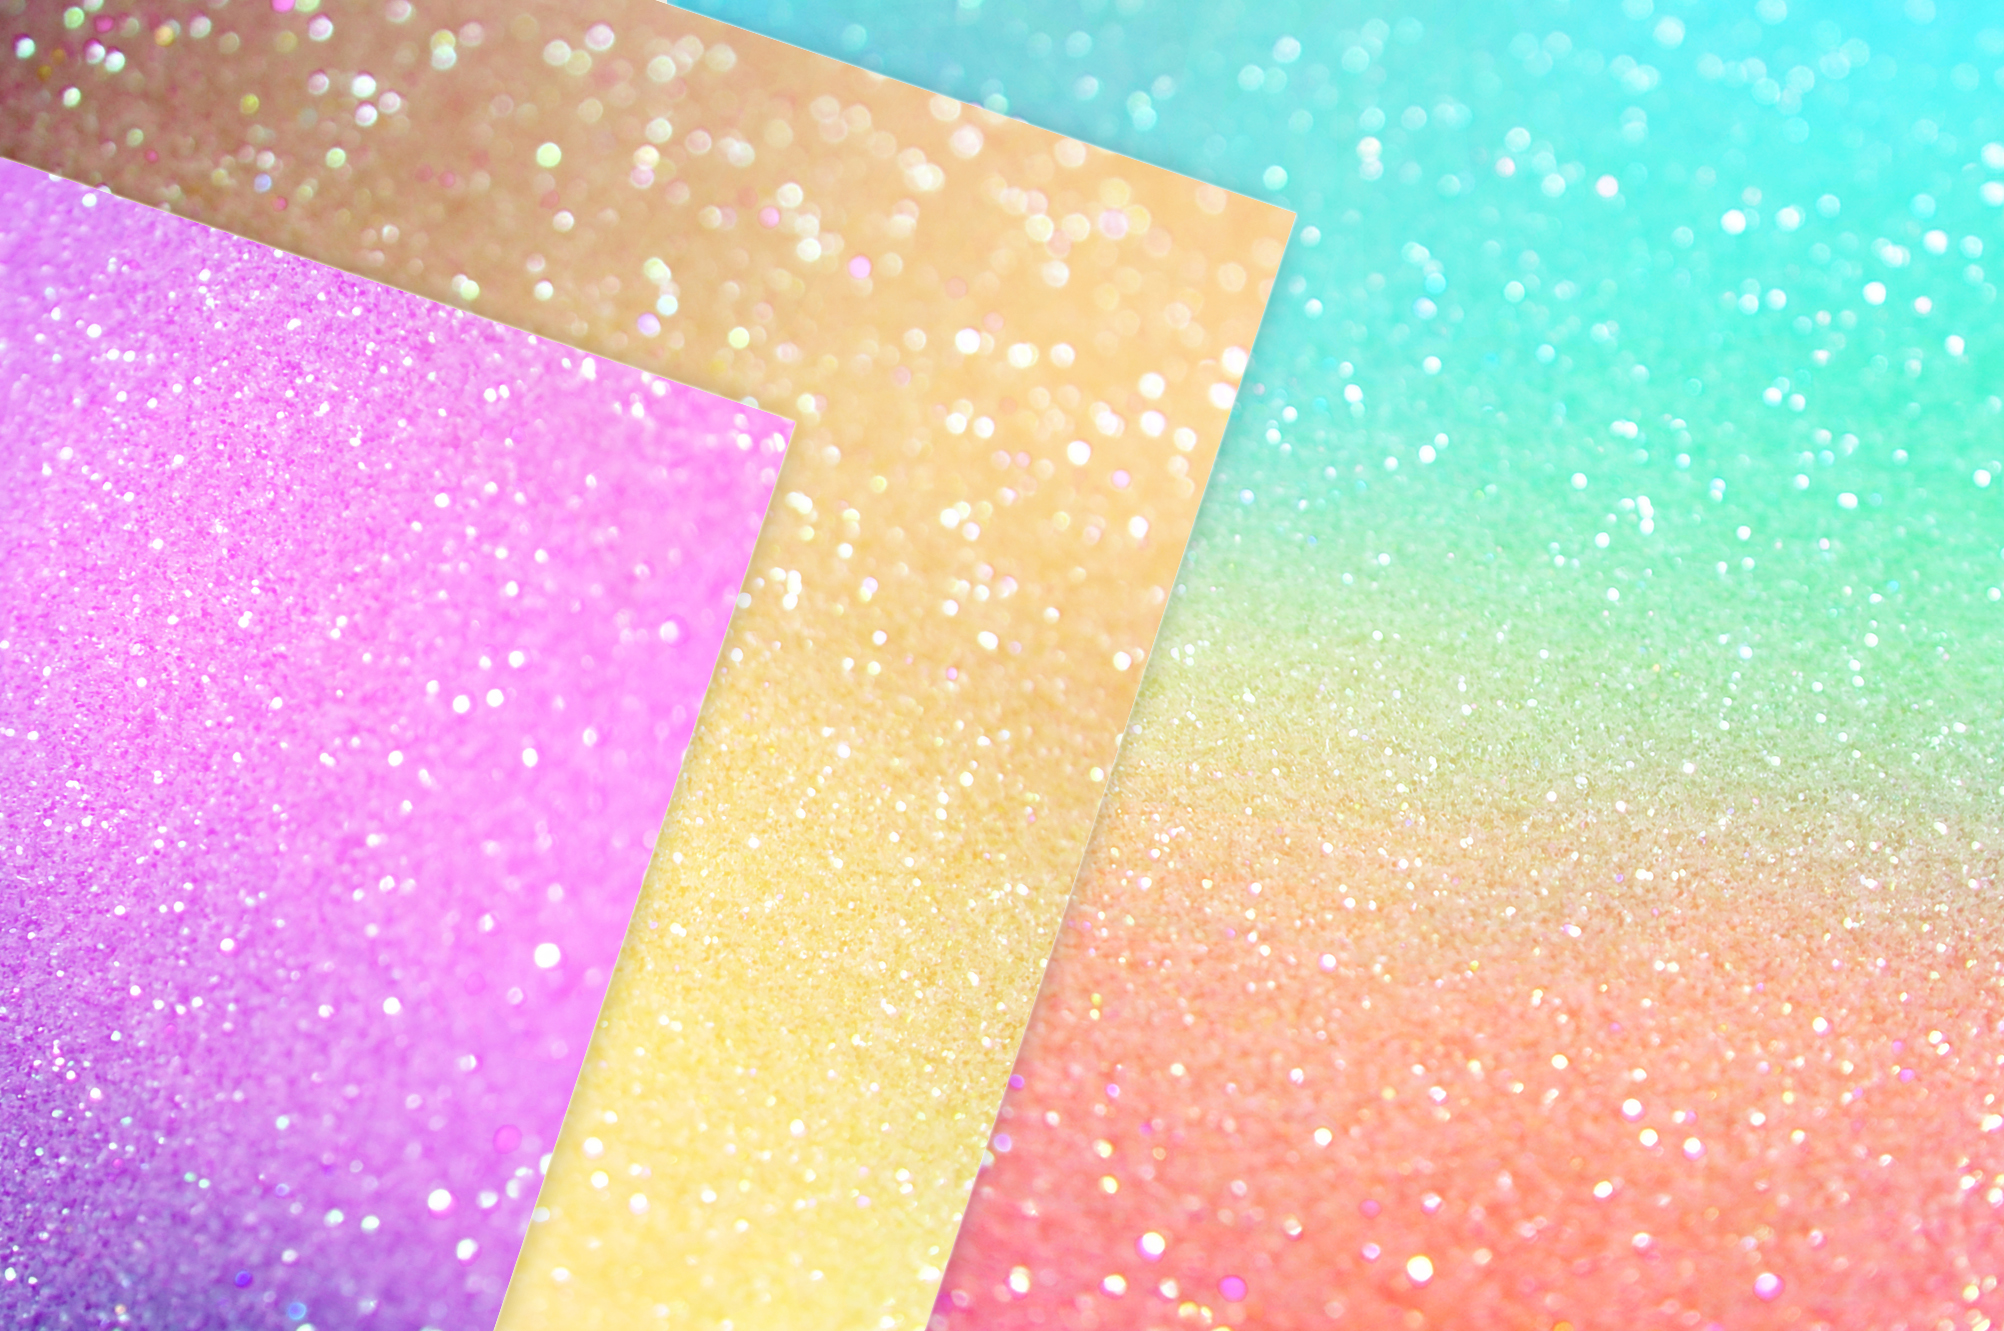 Iridescent Marble and Glitter Textures BUNDLE example image 24